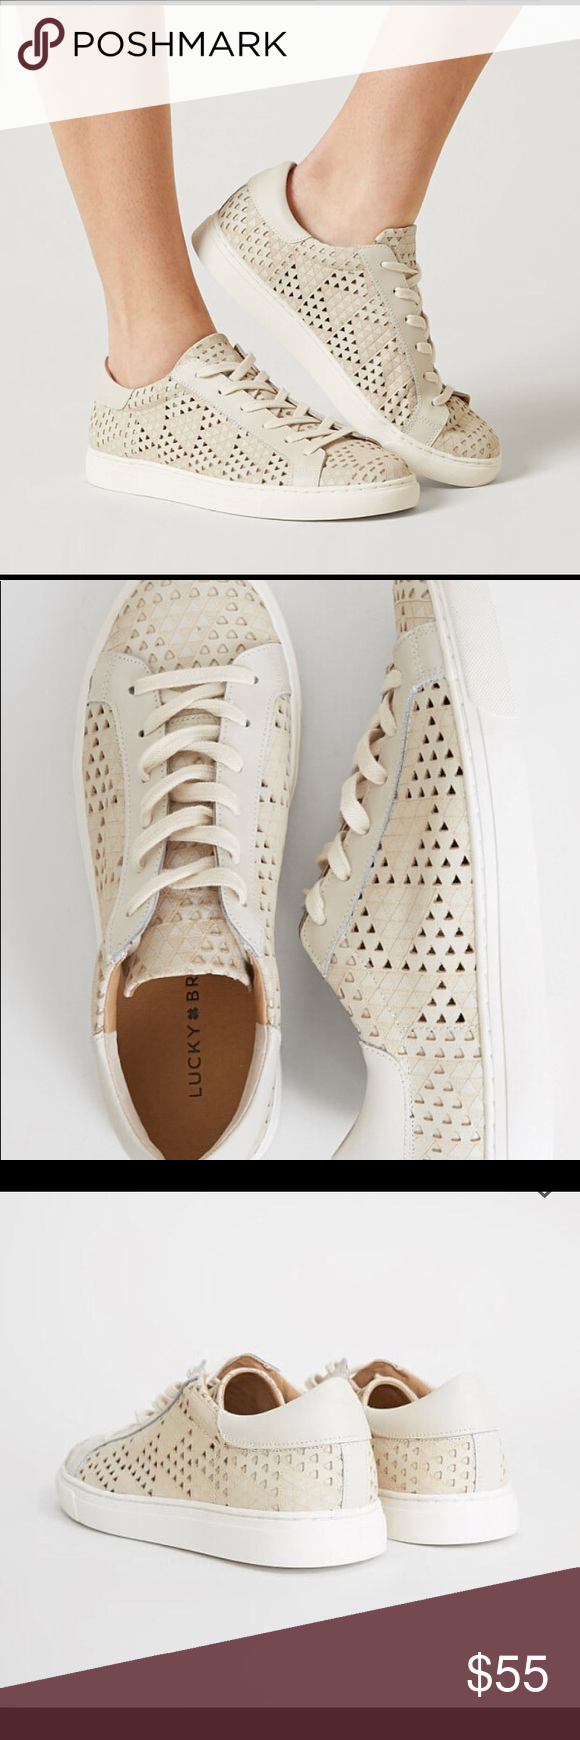 c39bb1f7 Women's Lucky Brand Lotus Sneakers Lucky Brand Women's Sneakers Brand new  Size 8 M Seashell leather Will ship within 24 hrs. Lucky Brand Shoes  Sneakers